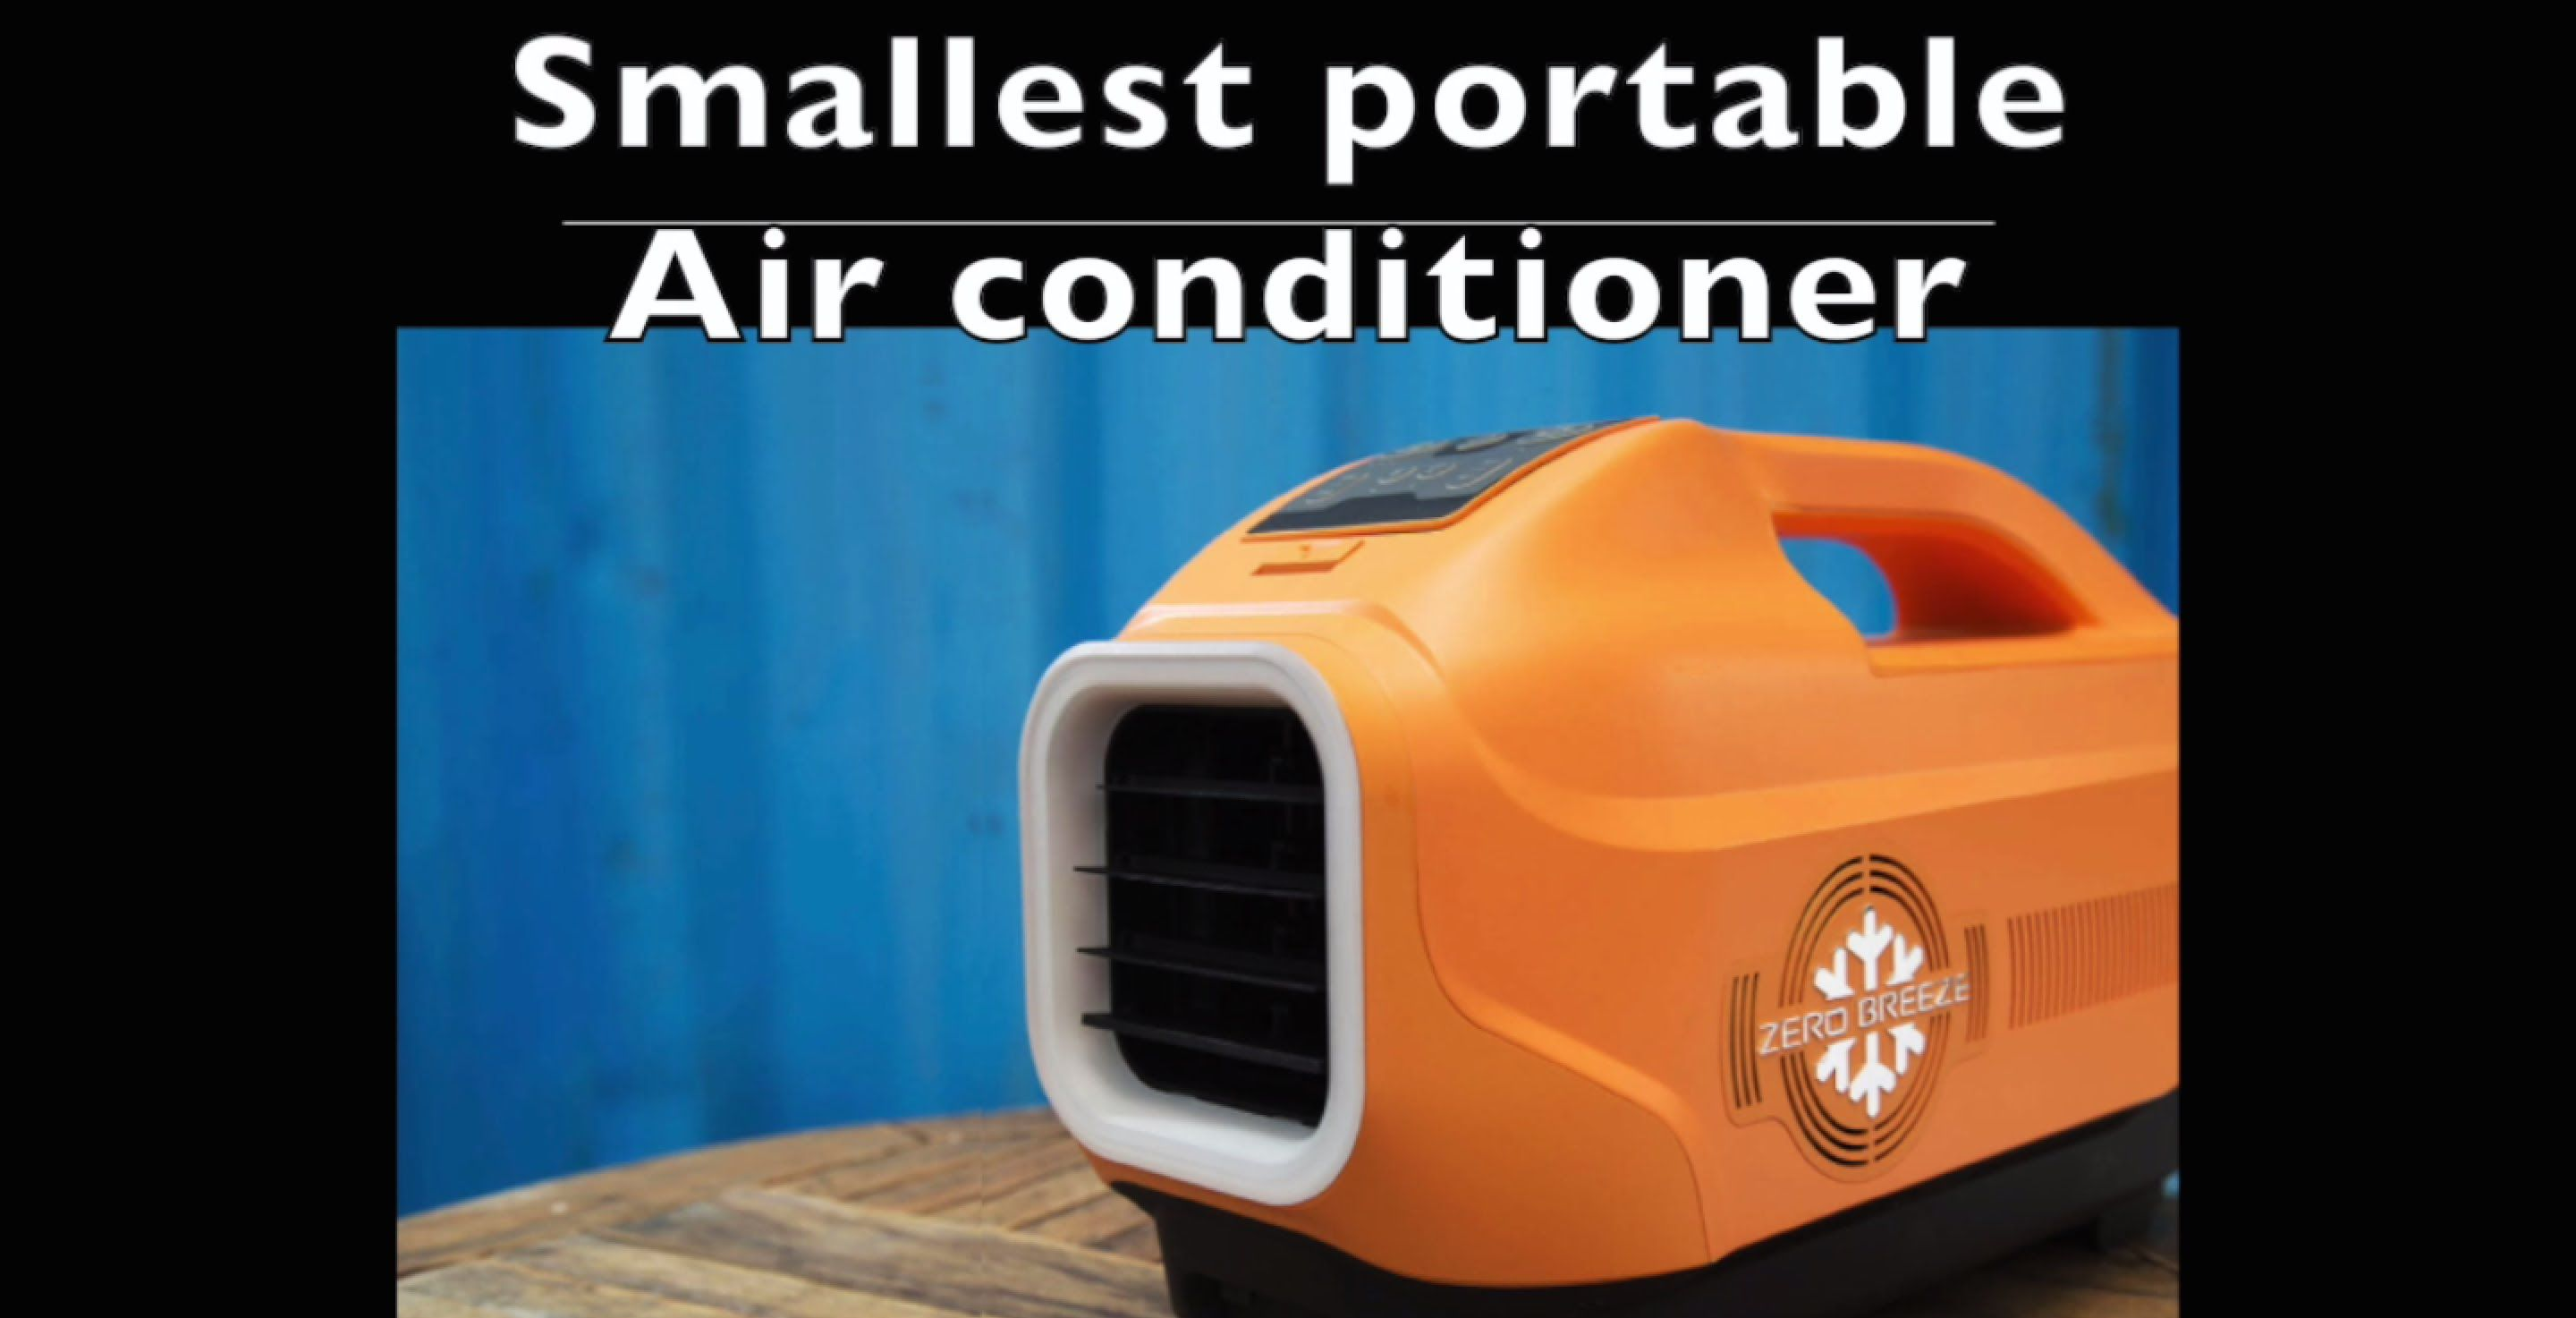 Smallest portable Air Conditioner, zero breeze Tent